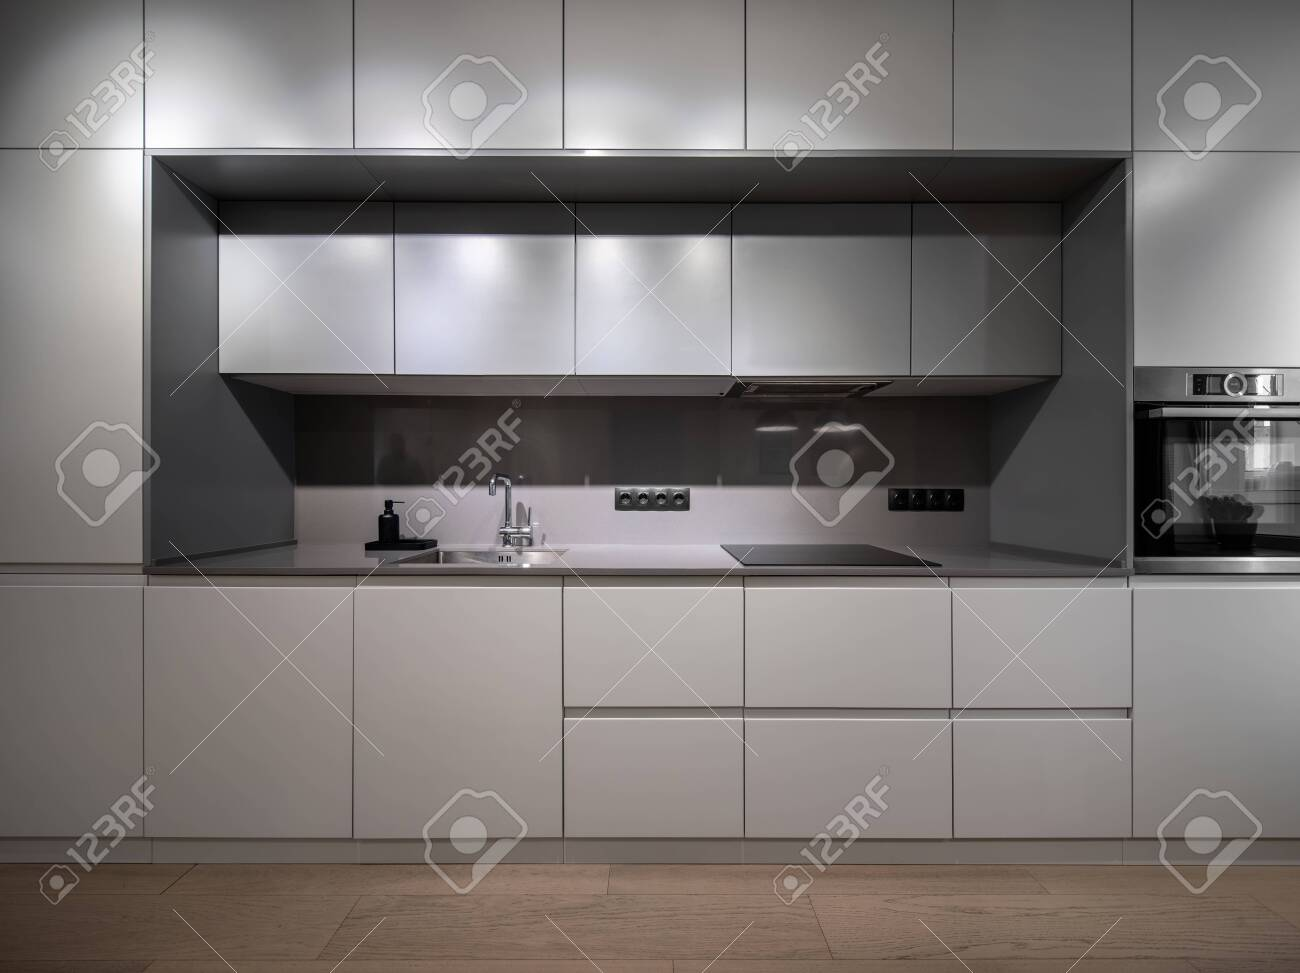 Beautiful illuminated modern gray kitchen with a parquet on the floor. There are lockers and drawers, sink with a chrome faucet, black dispenser, stove, oven, power sockets. Horizontal. - 144552645